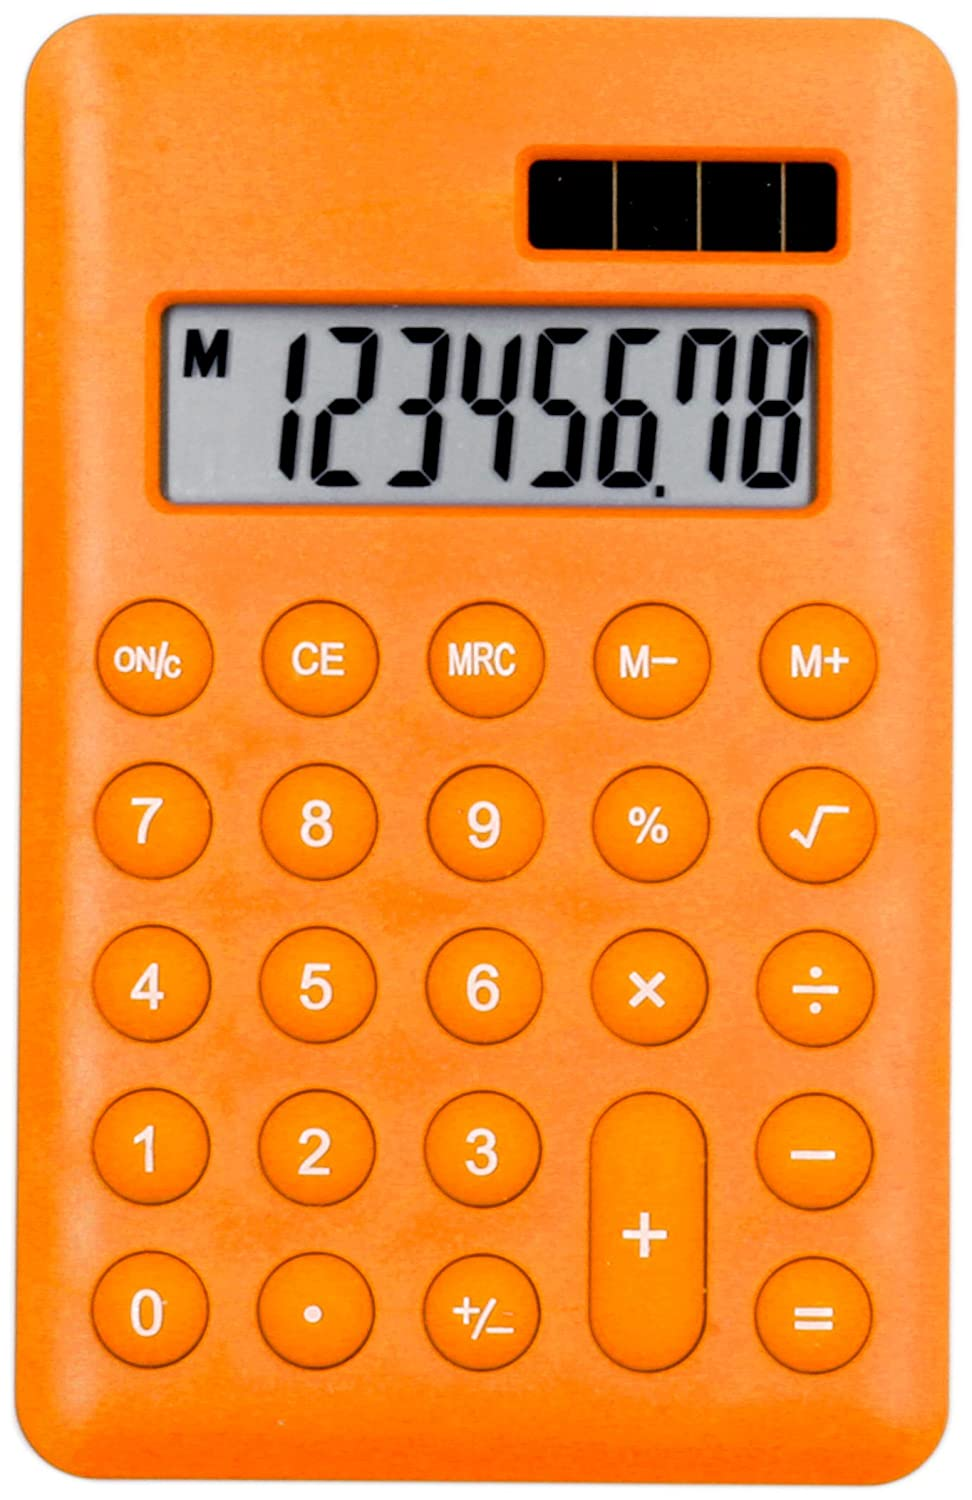 ORANGE CALCULATOR - HAND HELD POCKET - School/Home/Office - Solar/Battery - Basic Fully Functional - 8-Digit Display 10 Nice Things Limited